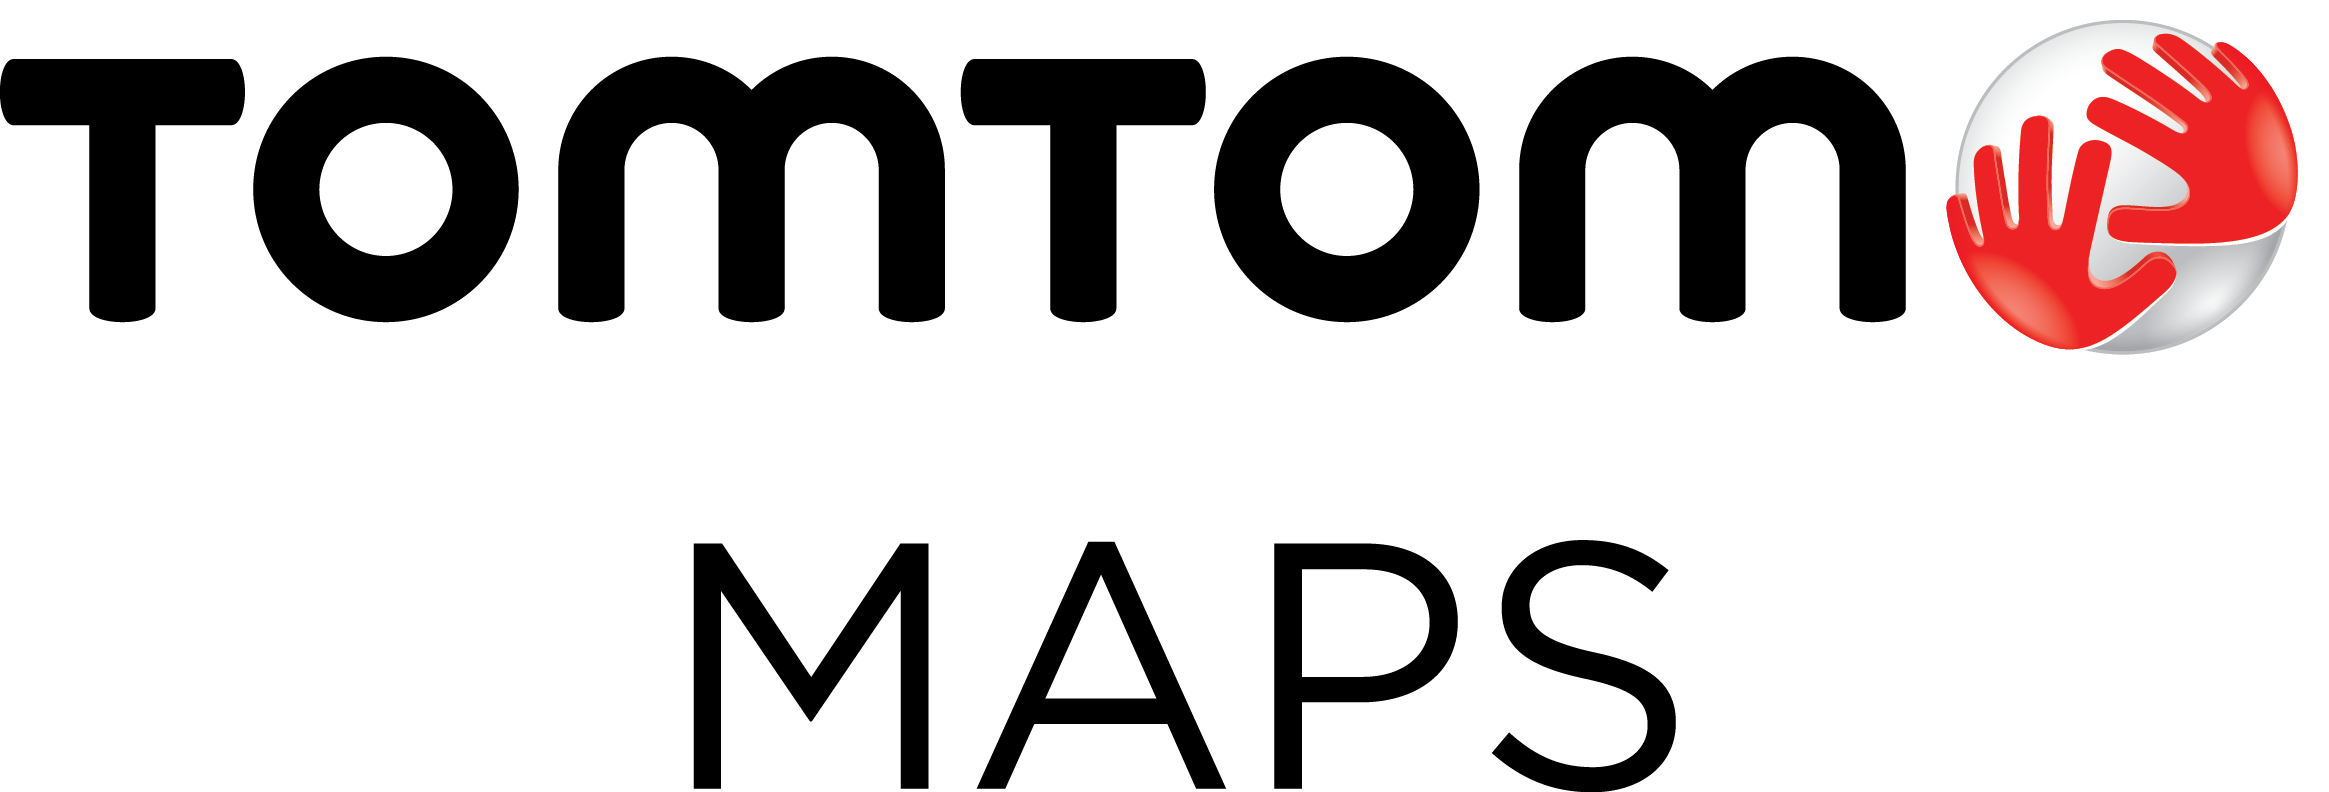 TomTom Maps: How Maps Drive Innovation